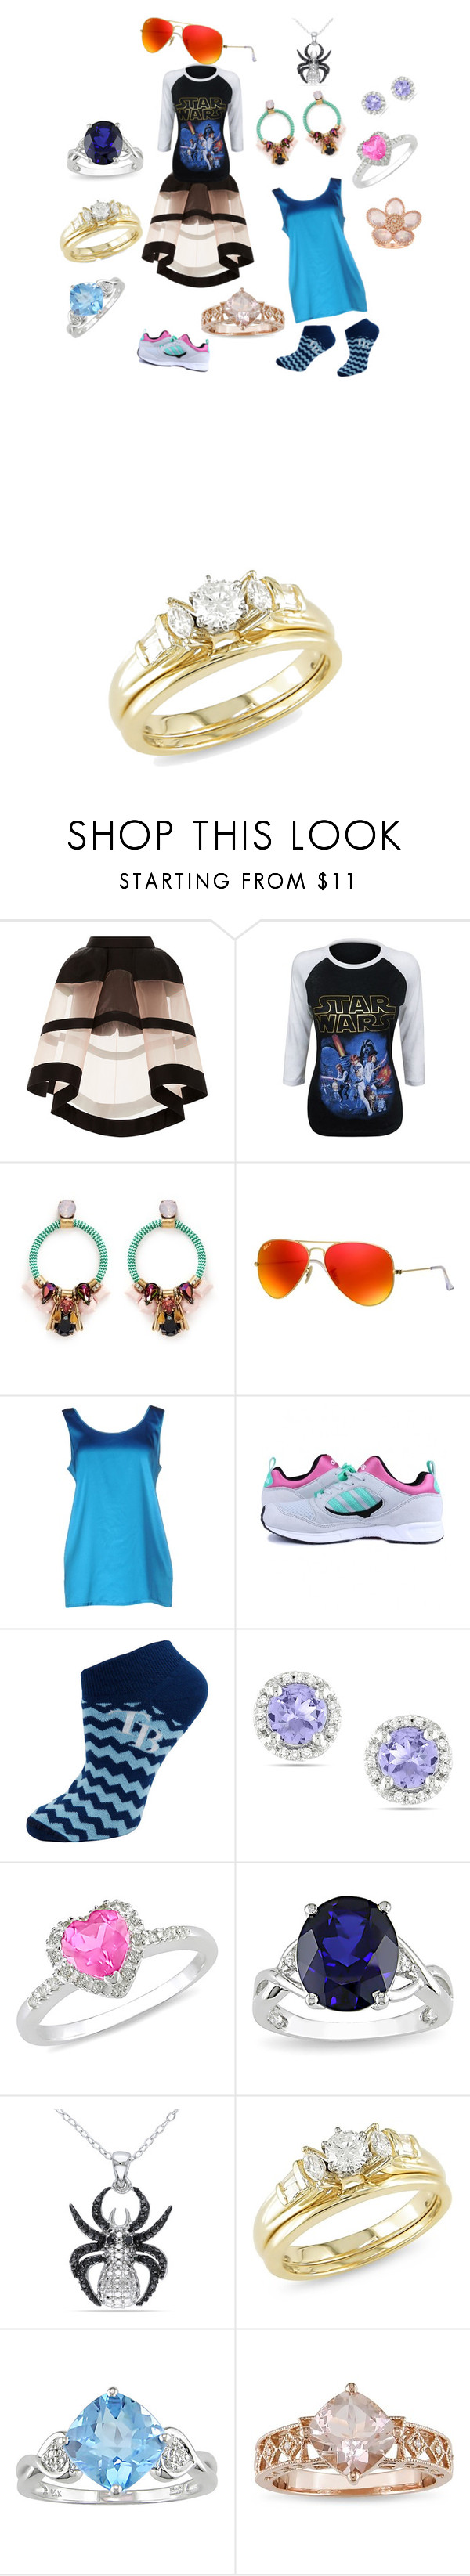 """""""fabiluse"""" by jacksepticfan ❤ liked on Polyvore featuring Delpozo, J.Crew, Ray-Ban, P.A.R.O.S.H., adidas Originals, For Bare Feet, Ice, women's clothing, women's fashion and women"""